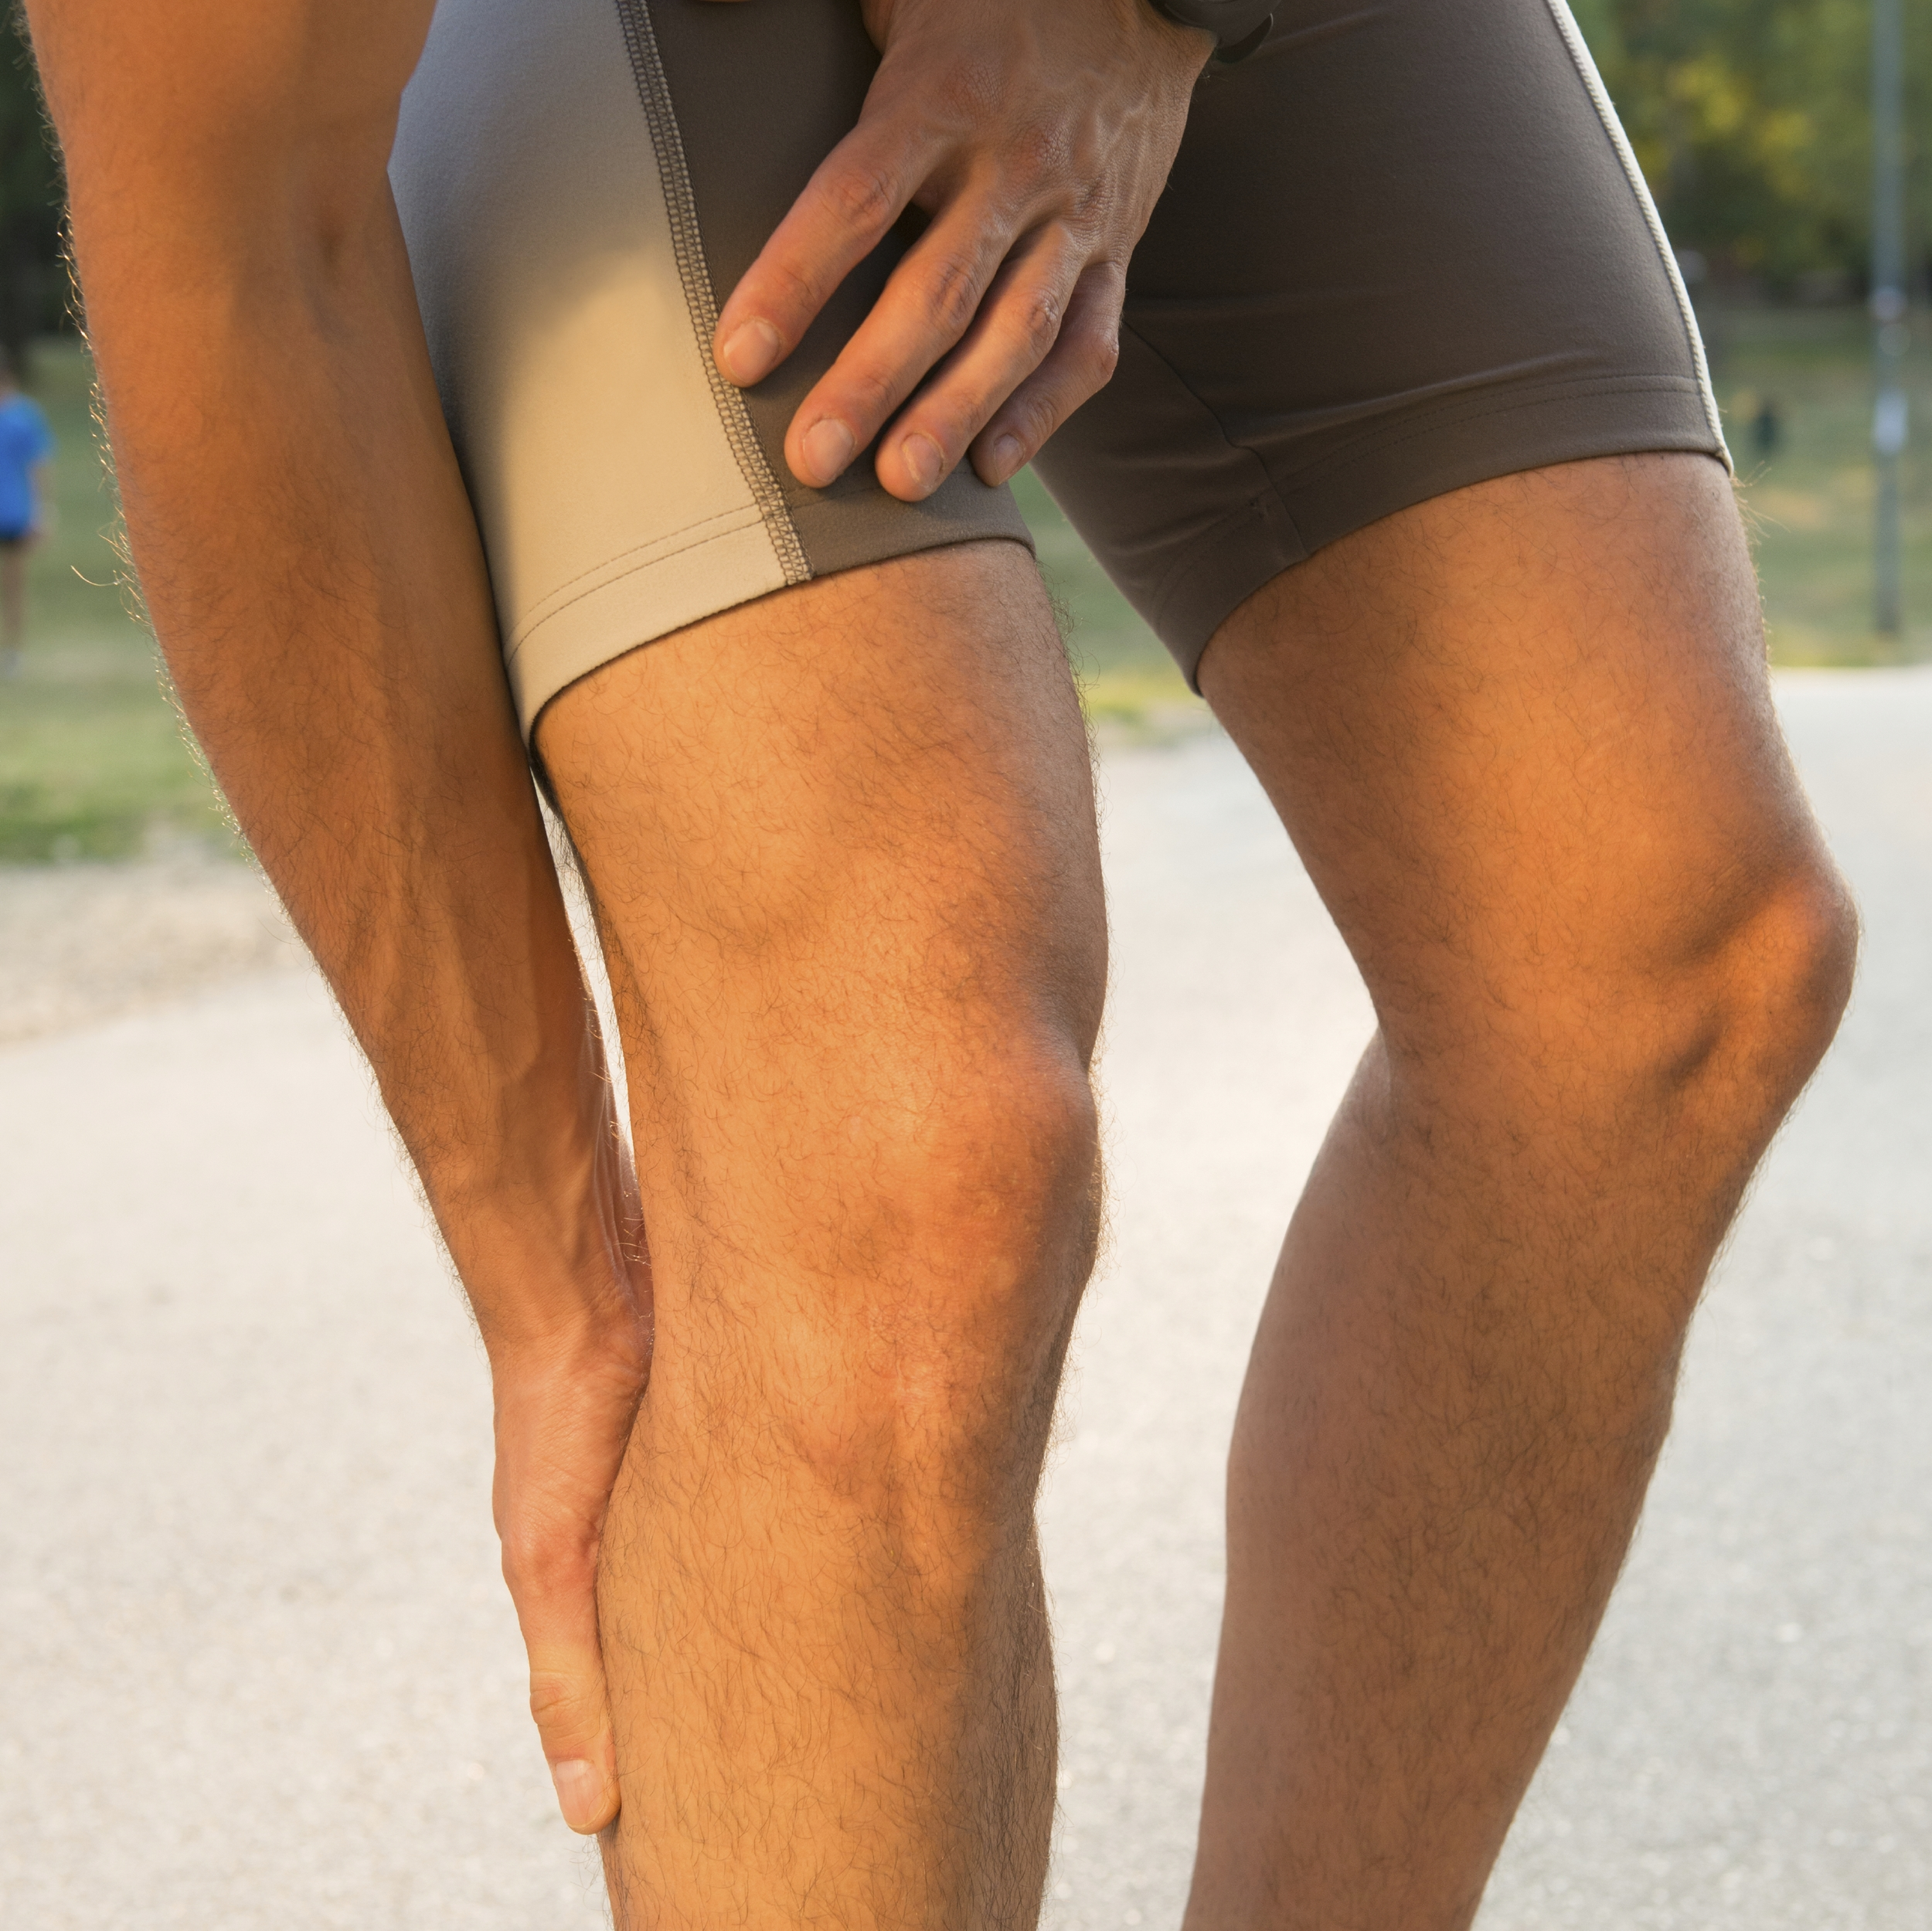 Don't let pulled muscles stifle your training routine. Know the causes and how to avoid them, as well as the best treatments.